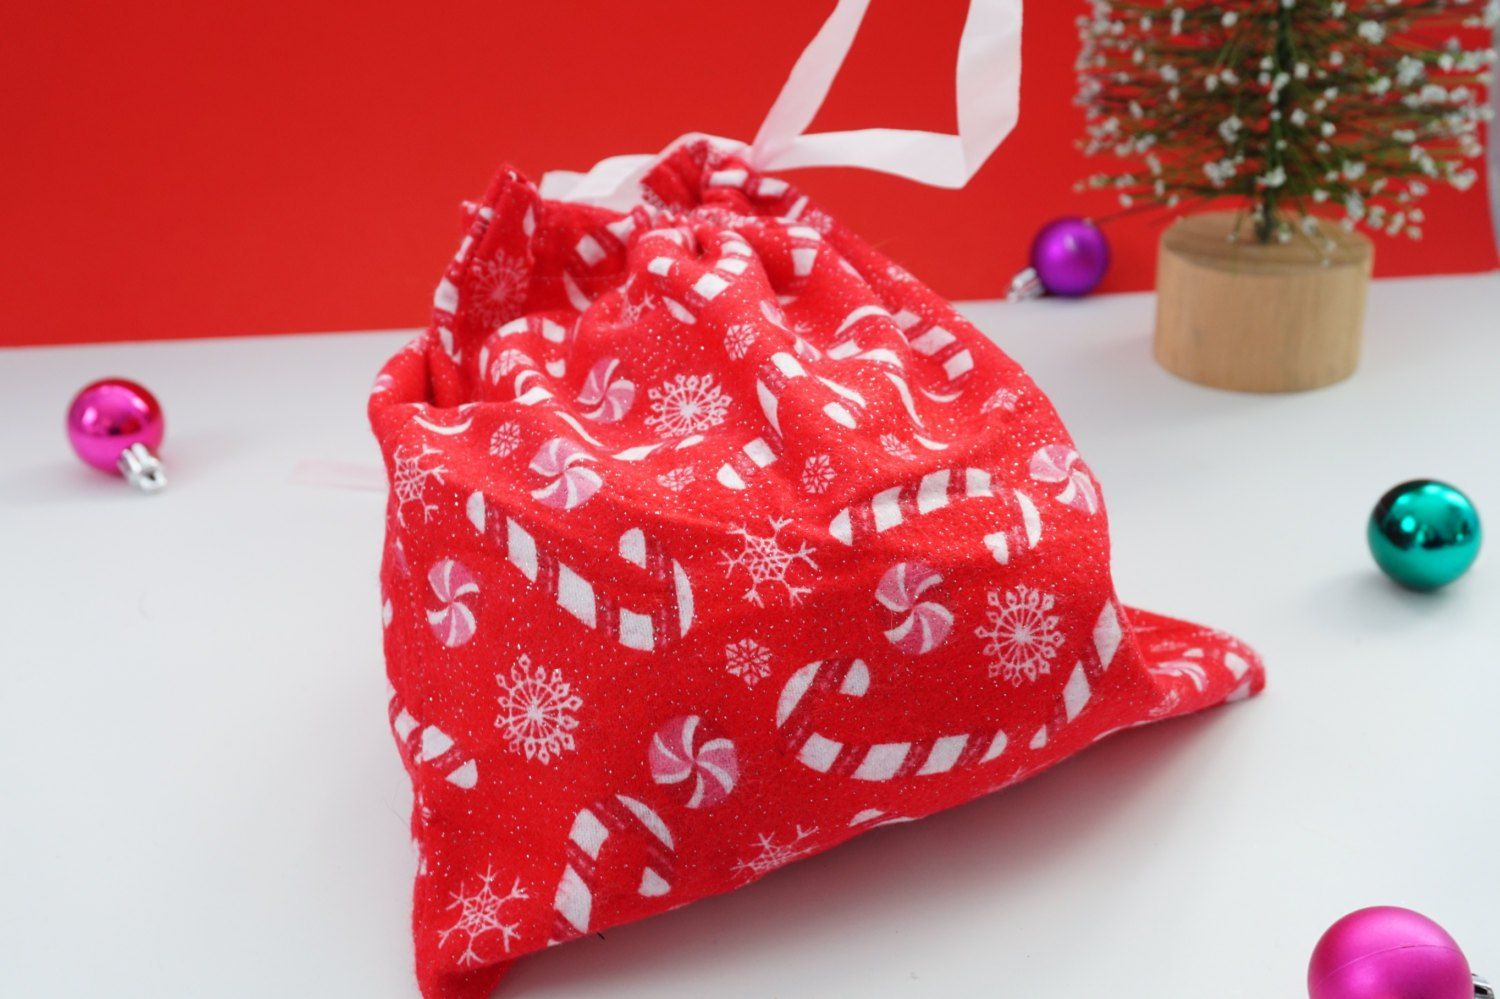 Pin by Created by Laura on All products   Pinterest   Christmas gift ...